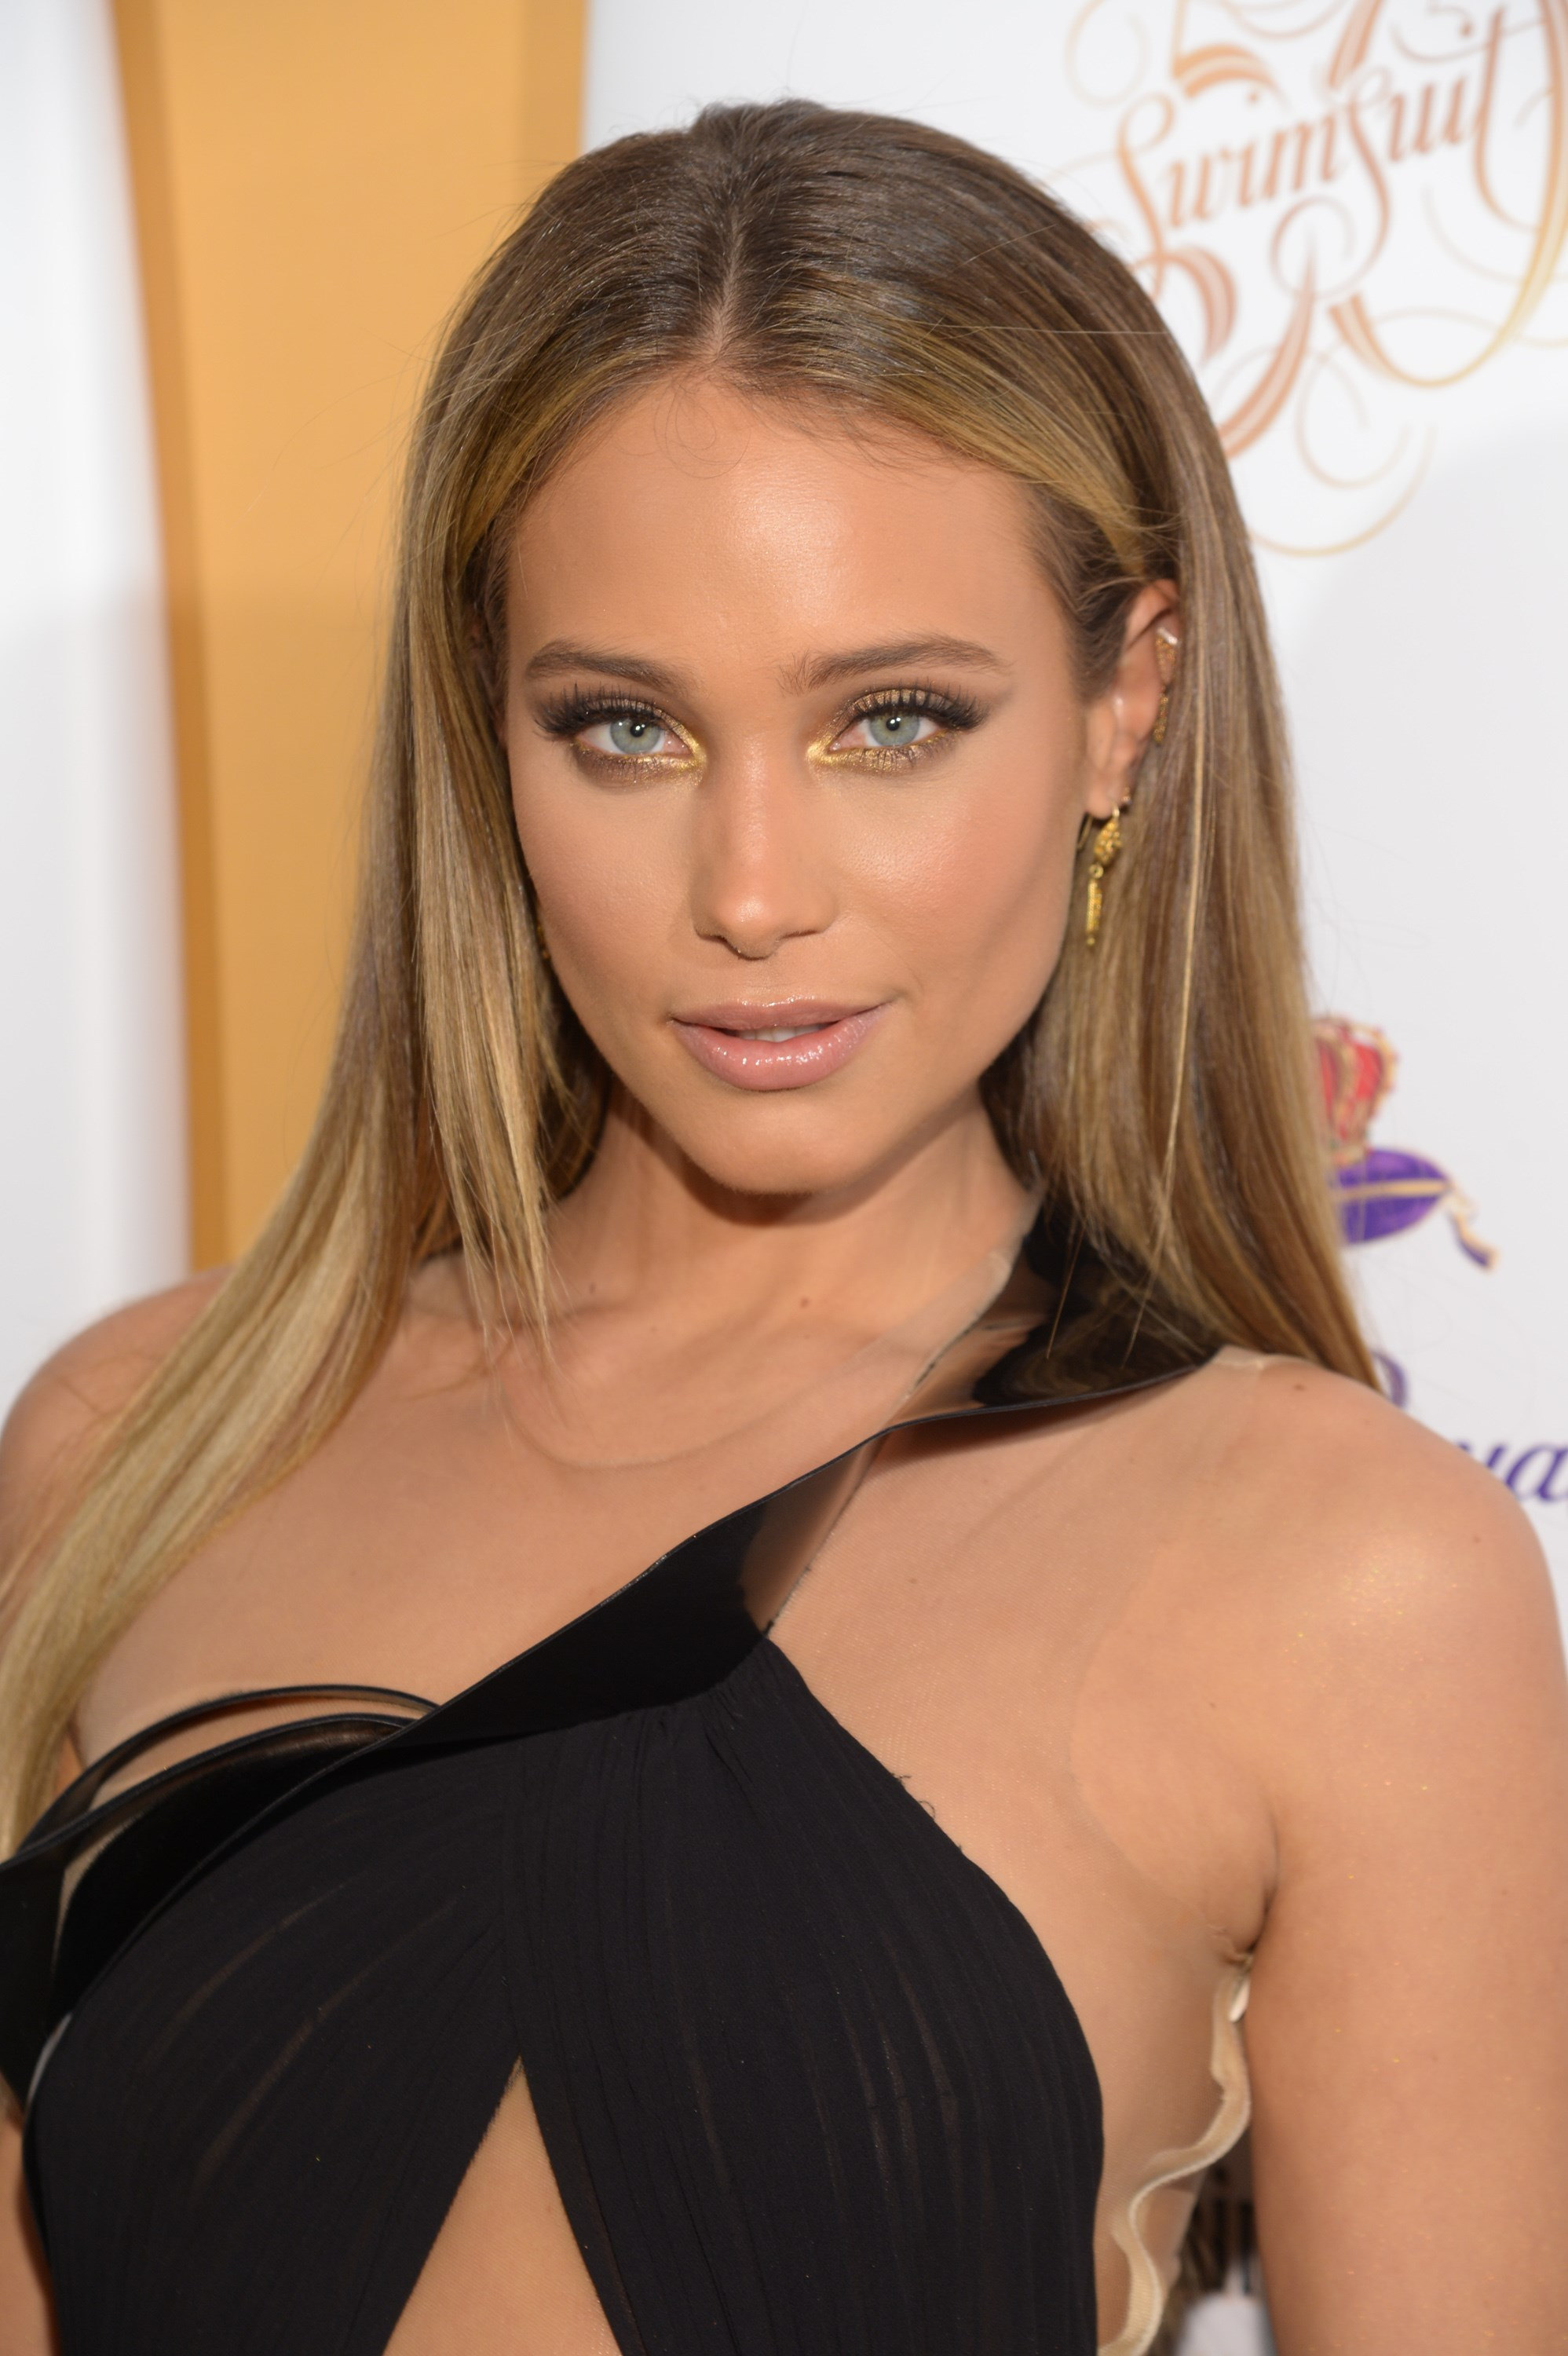 Hannah Davis nude (18 photo) Gallery, Facebook, lingerie